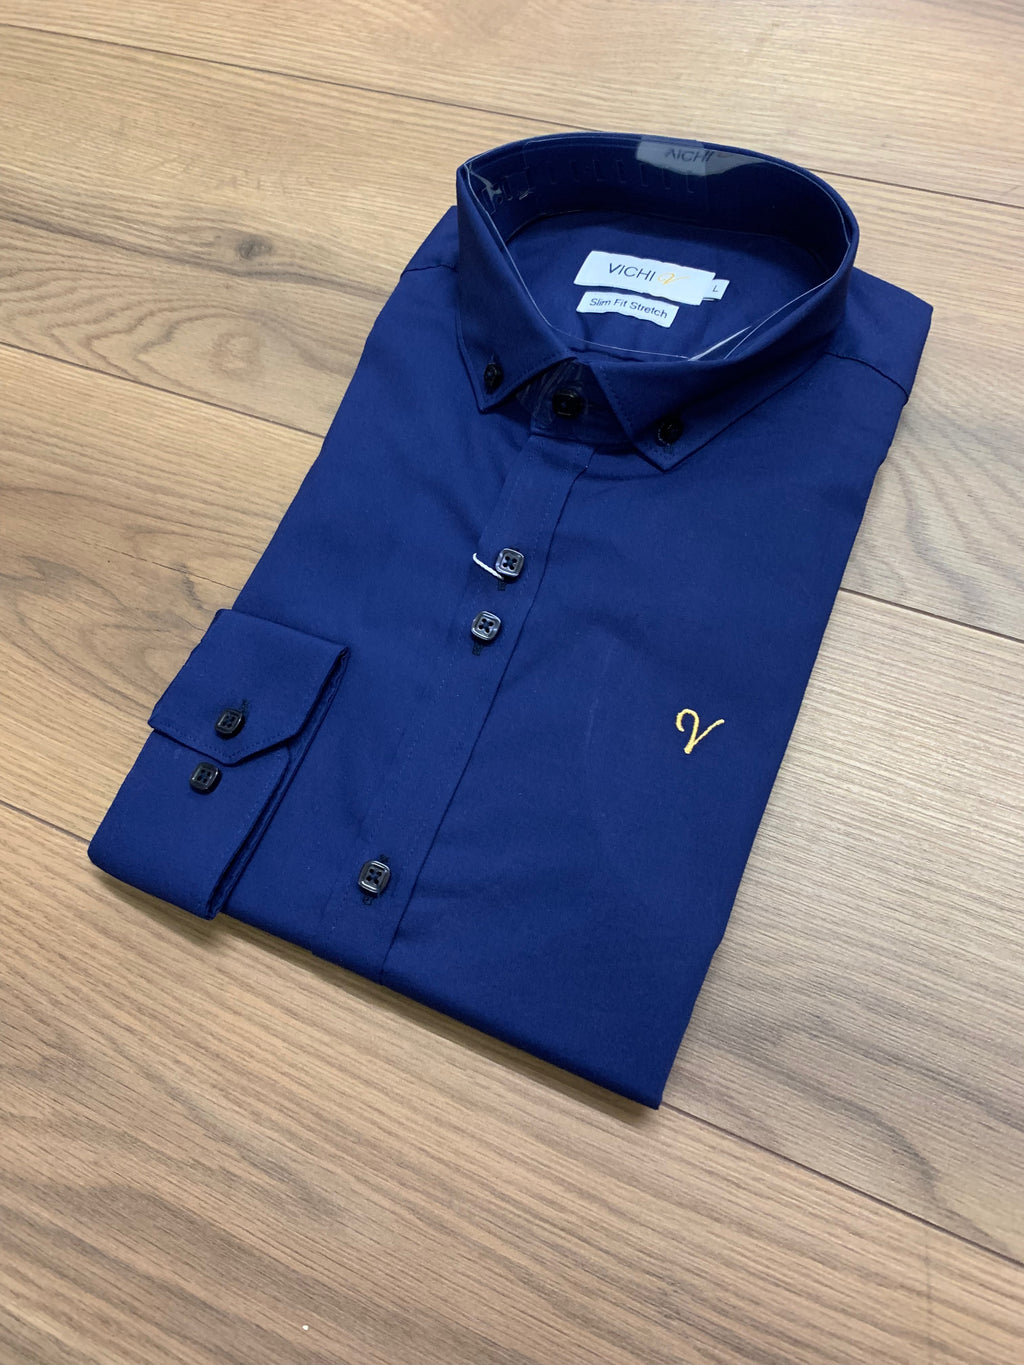 Vichi Slim Fit Stretch Shirt - Navy - jjdonnelly